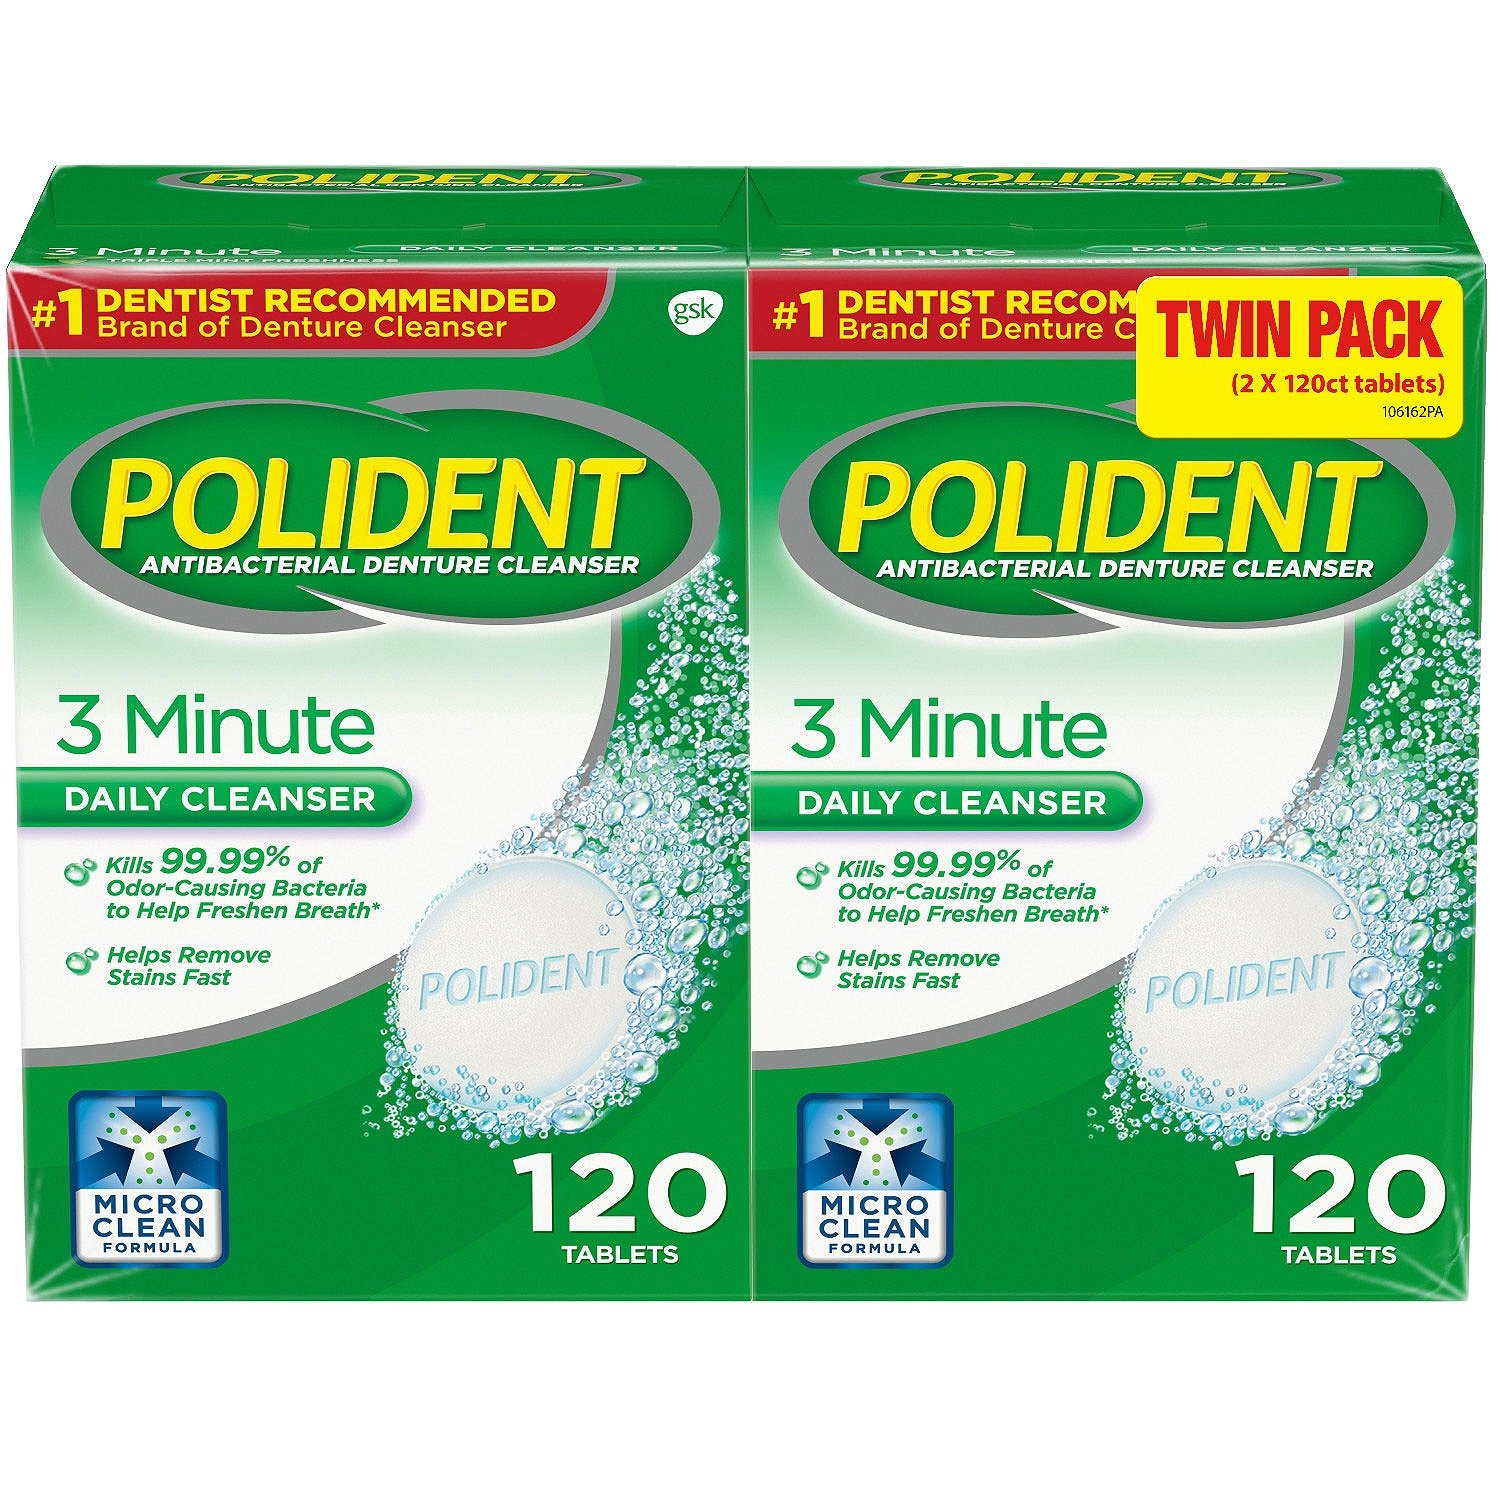 Polident 3-minute Anti-bacterial Denture Cleanser Tablets, Triple Mint Fresh, 120-count Boxes (Pack of 2). The Most Popular Denture Care Cleaner for Full Partial Denture False Teeth.